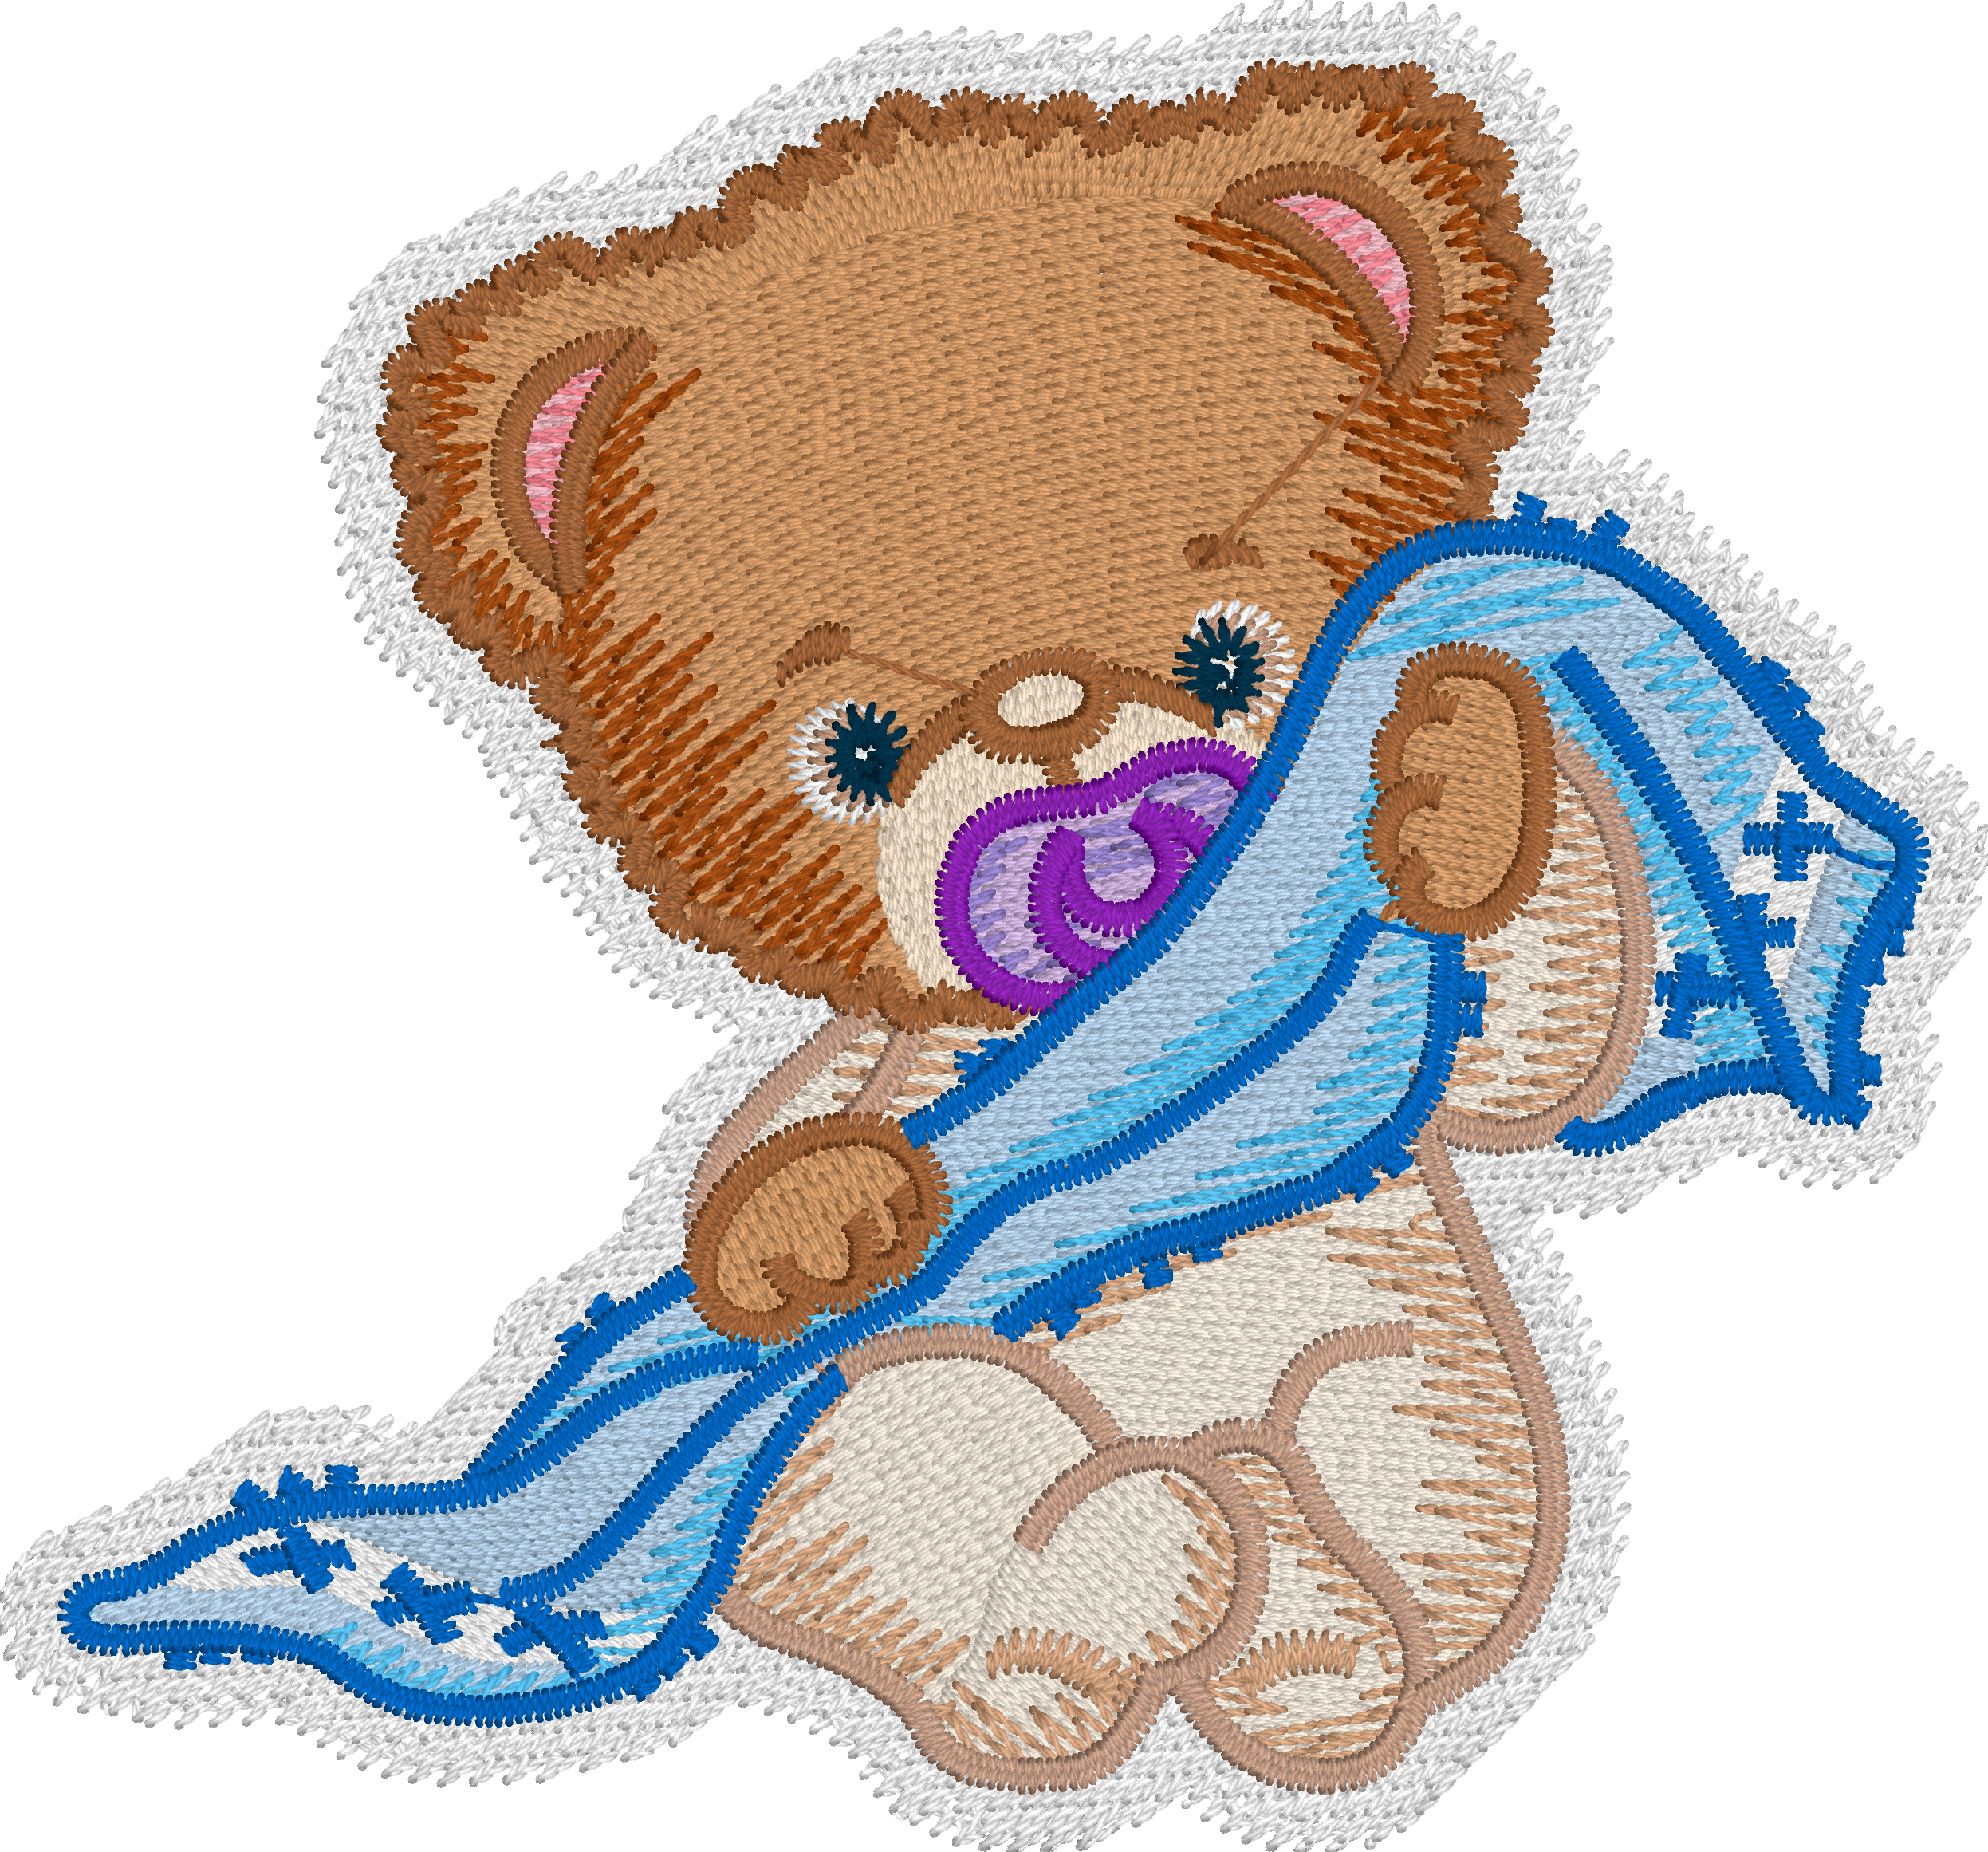 Embrilliance embroidery software for mac and pc enthusiast